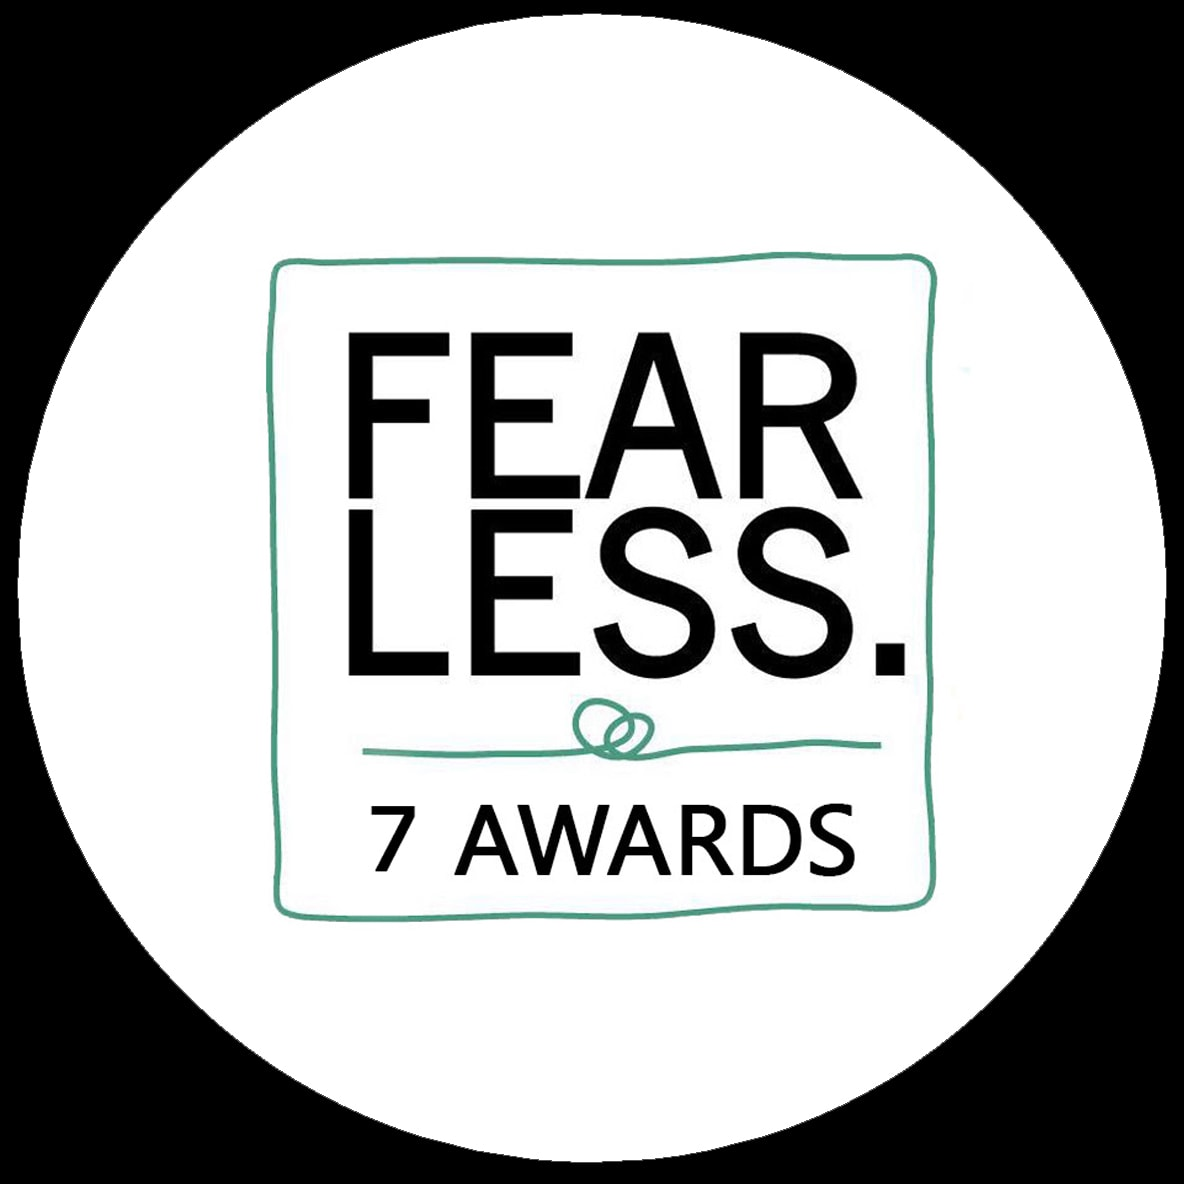 Lucy has won 7 fearless awards for outstanding candid photography.